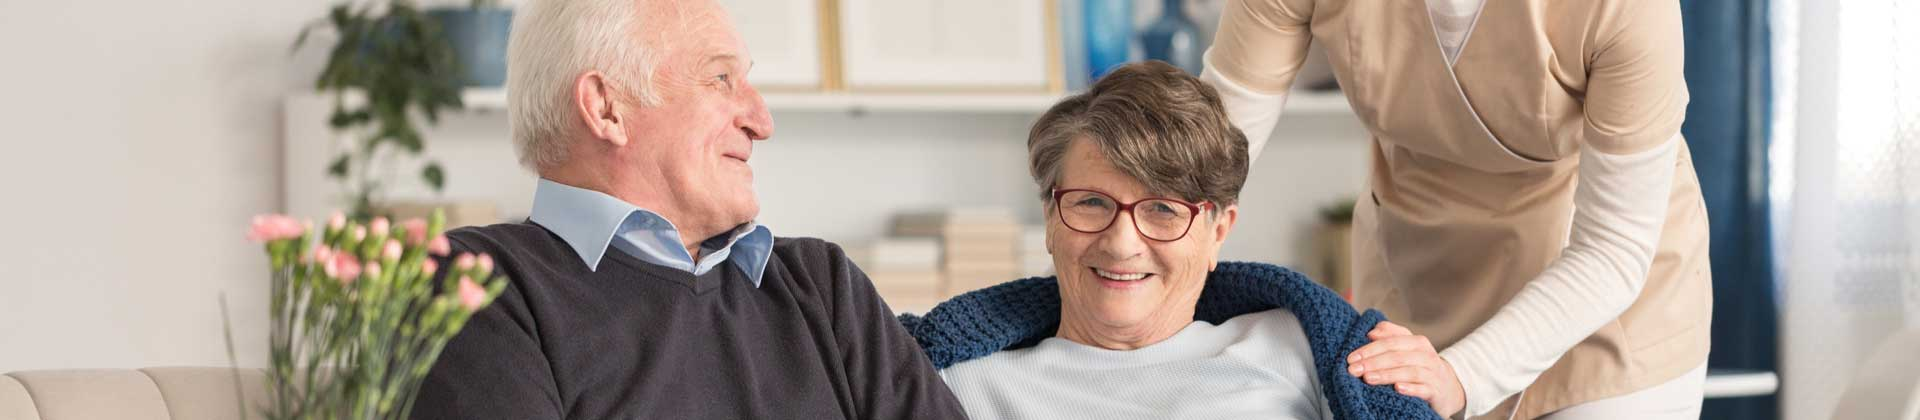 A senior couple sitting and looking toward the camera while a nurse stands behind them